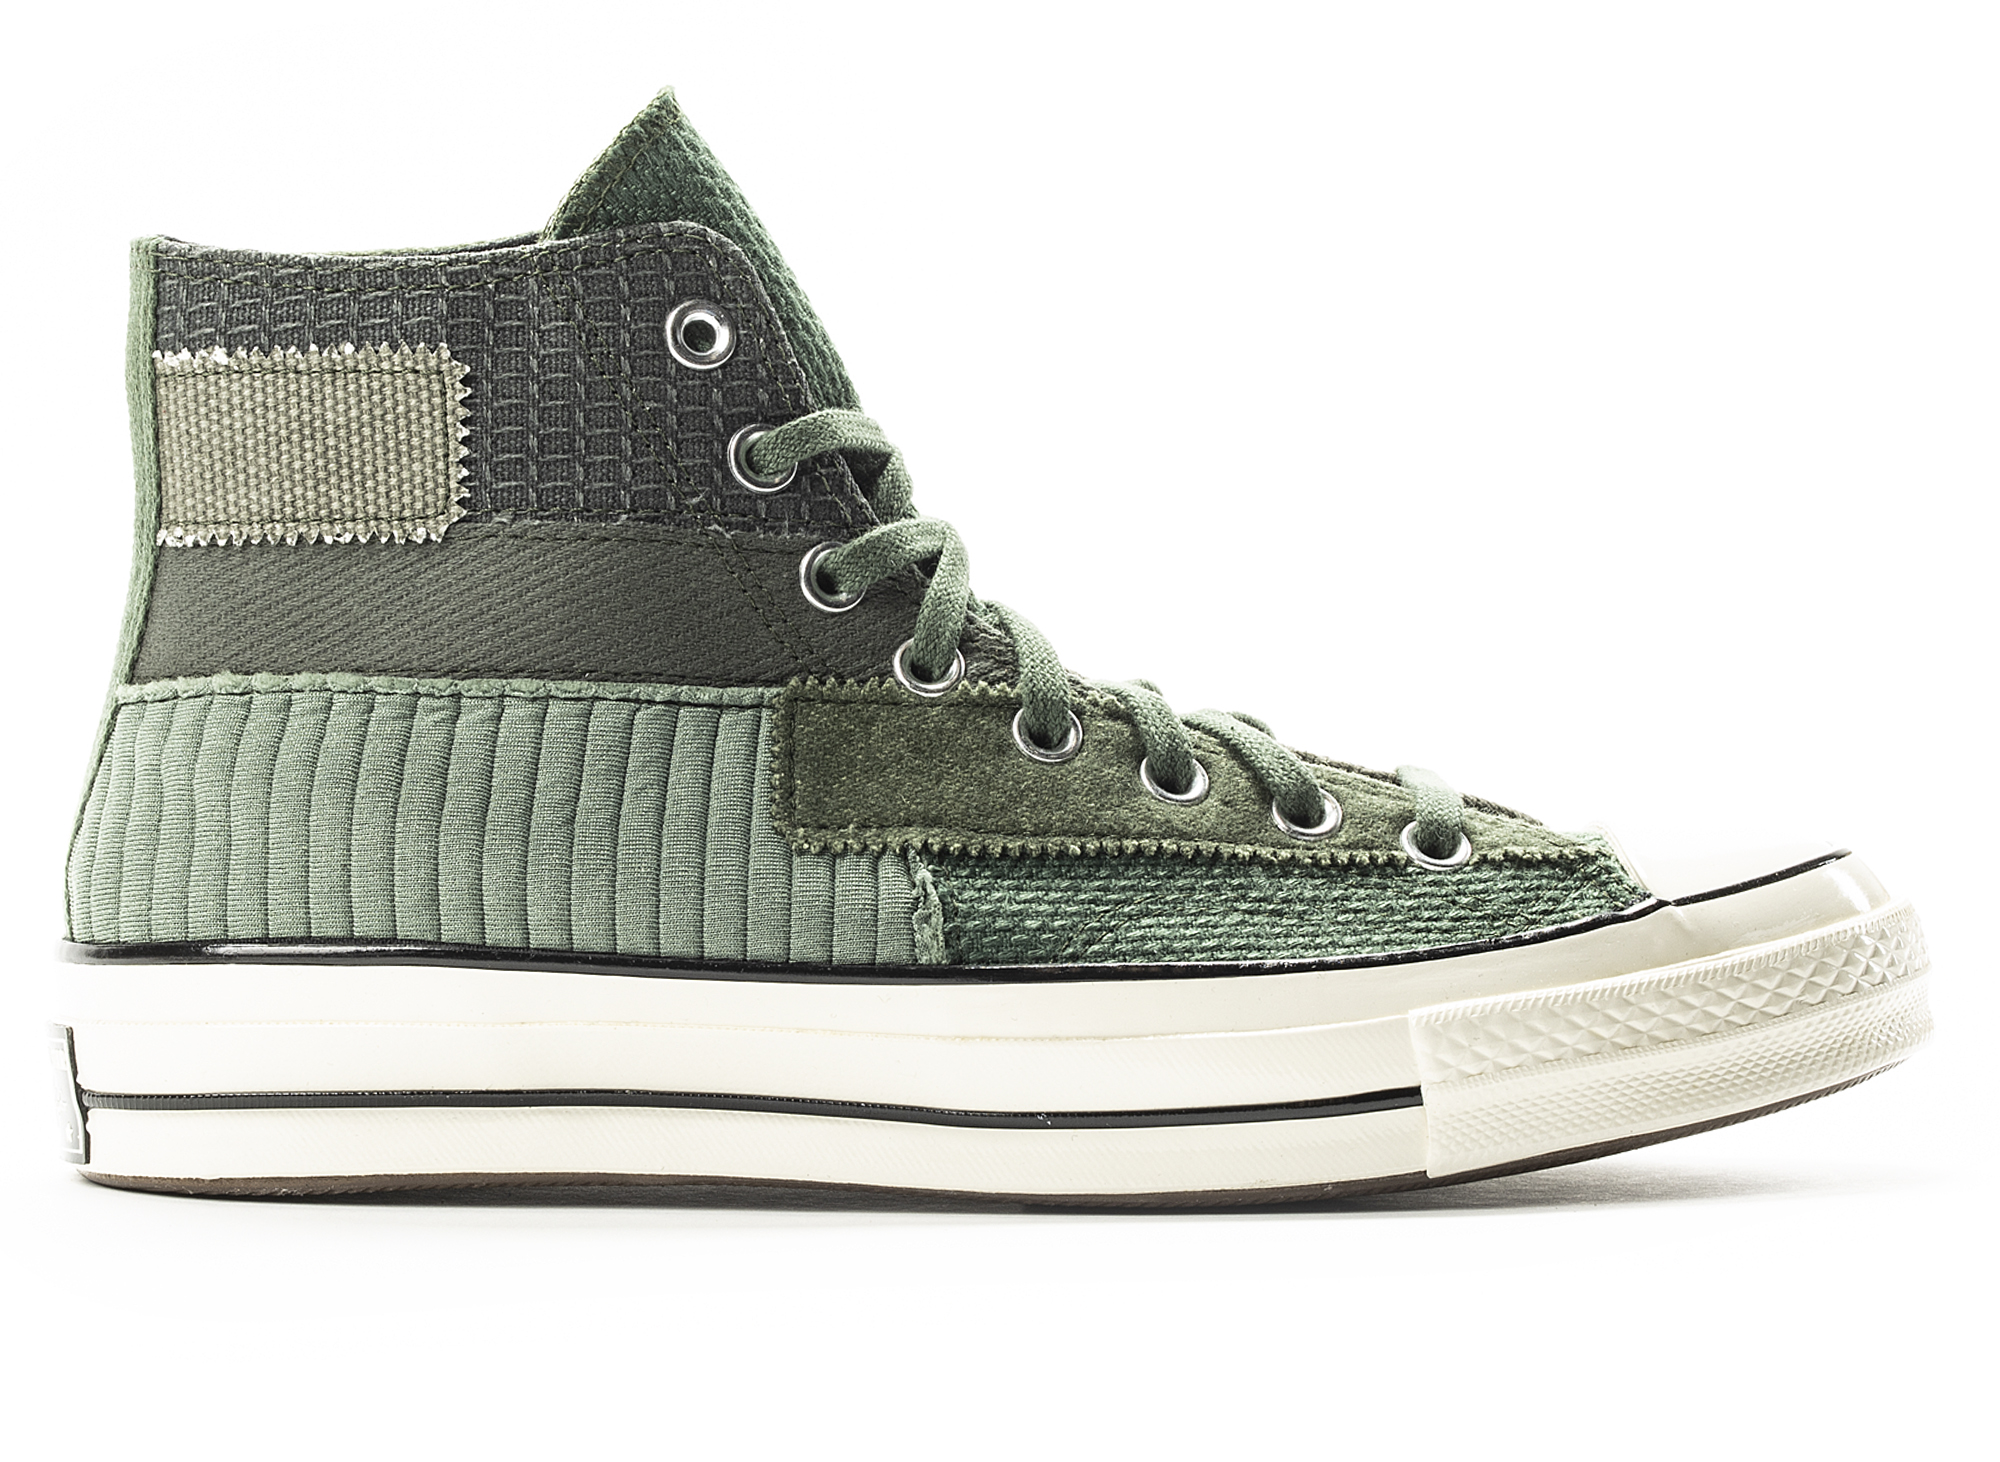 Converse 70 Hi Patchwork in Green